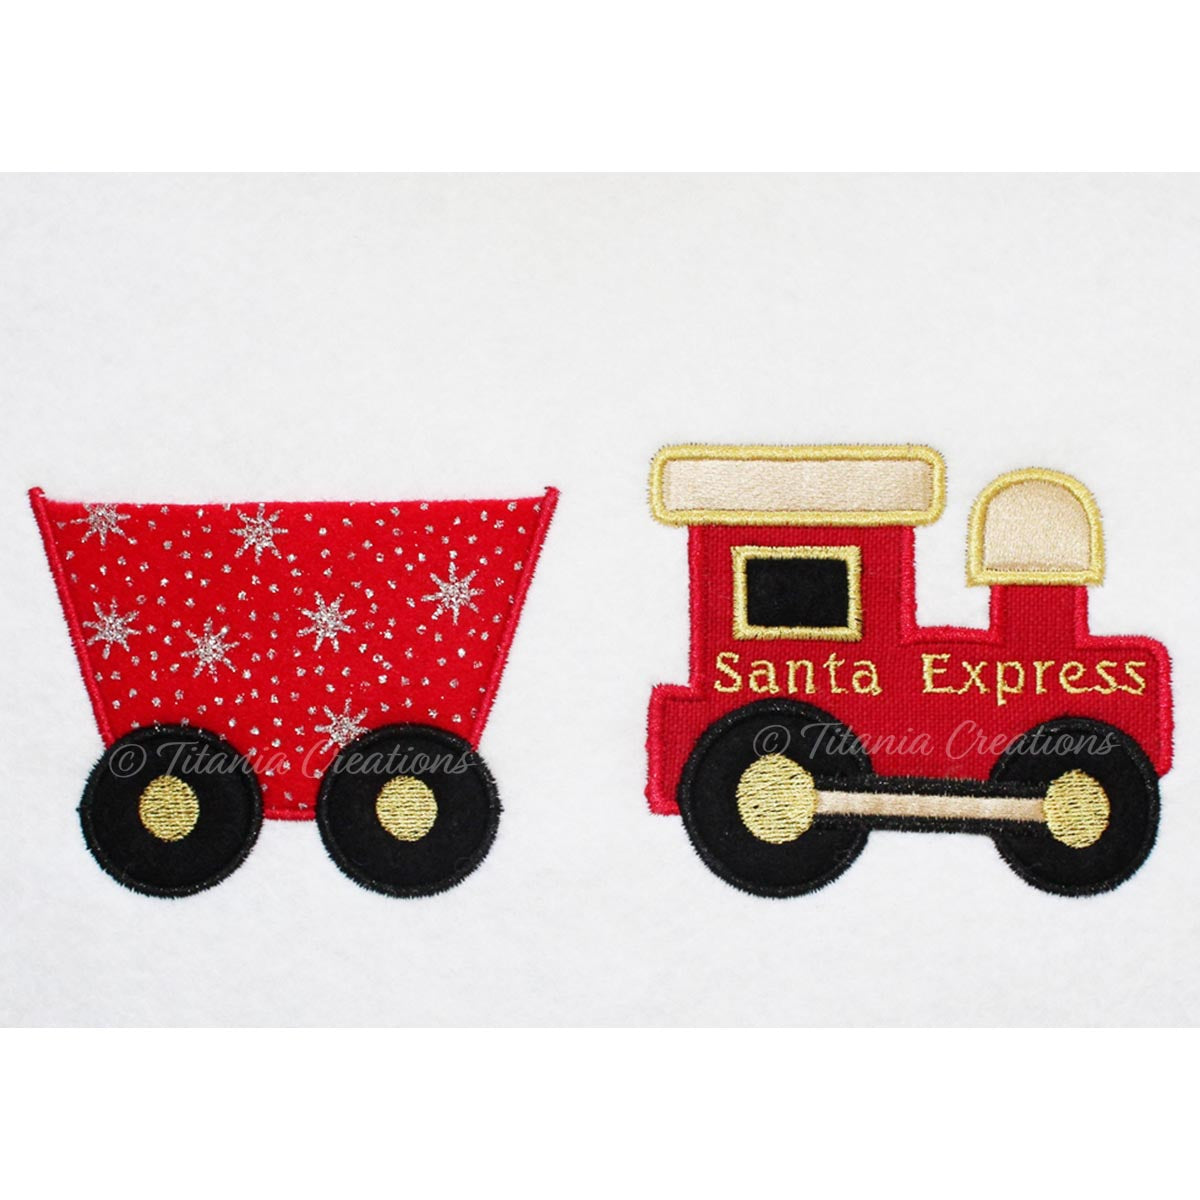 Applique Santa Express 4x4